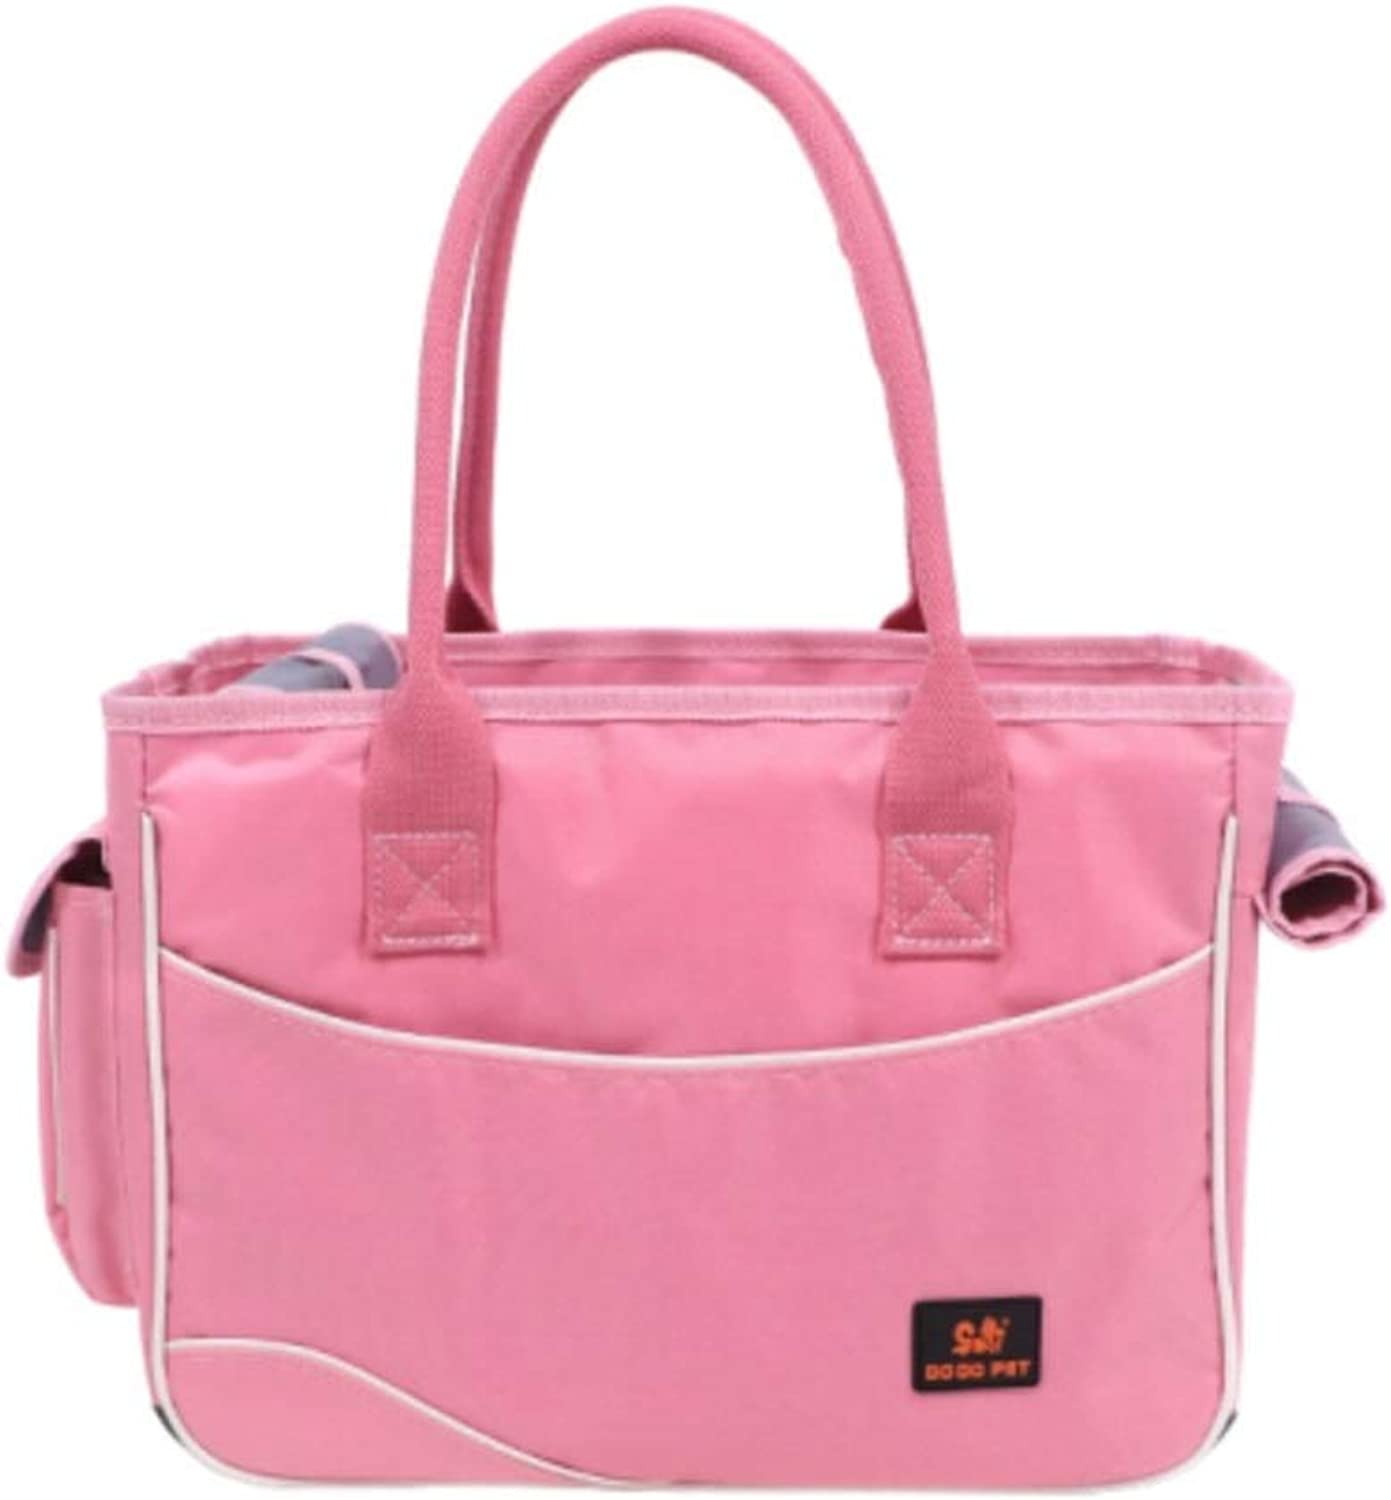 2019 Newly DesignedFashion Pet Dog Carrier Leather Dog Carriers Luxury Cat Travel Carrying Handbag Outdoor Travel Walking Hiking (color   Pink, Size   S)